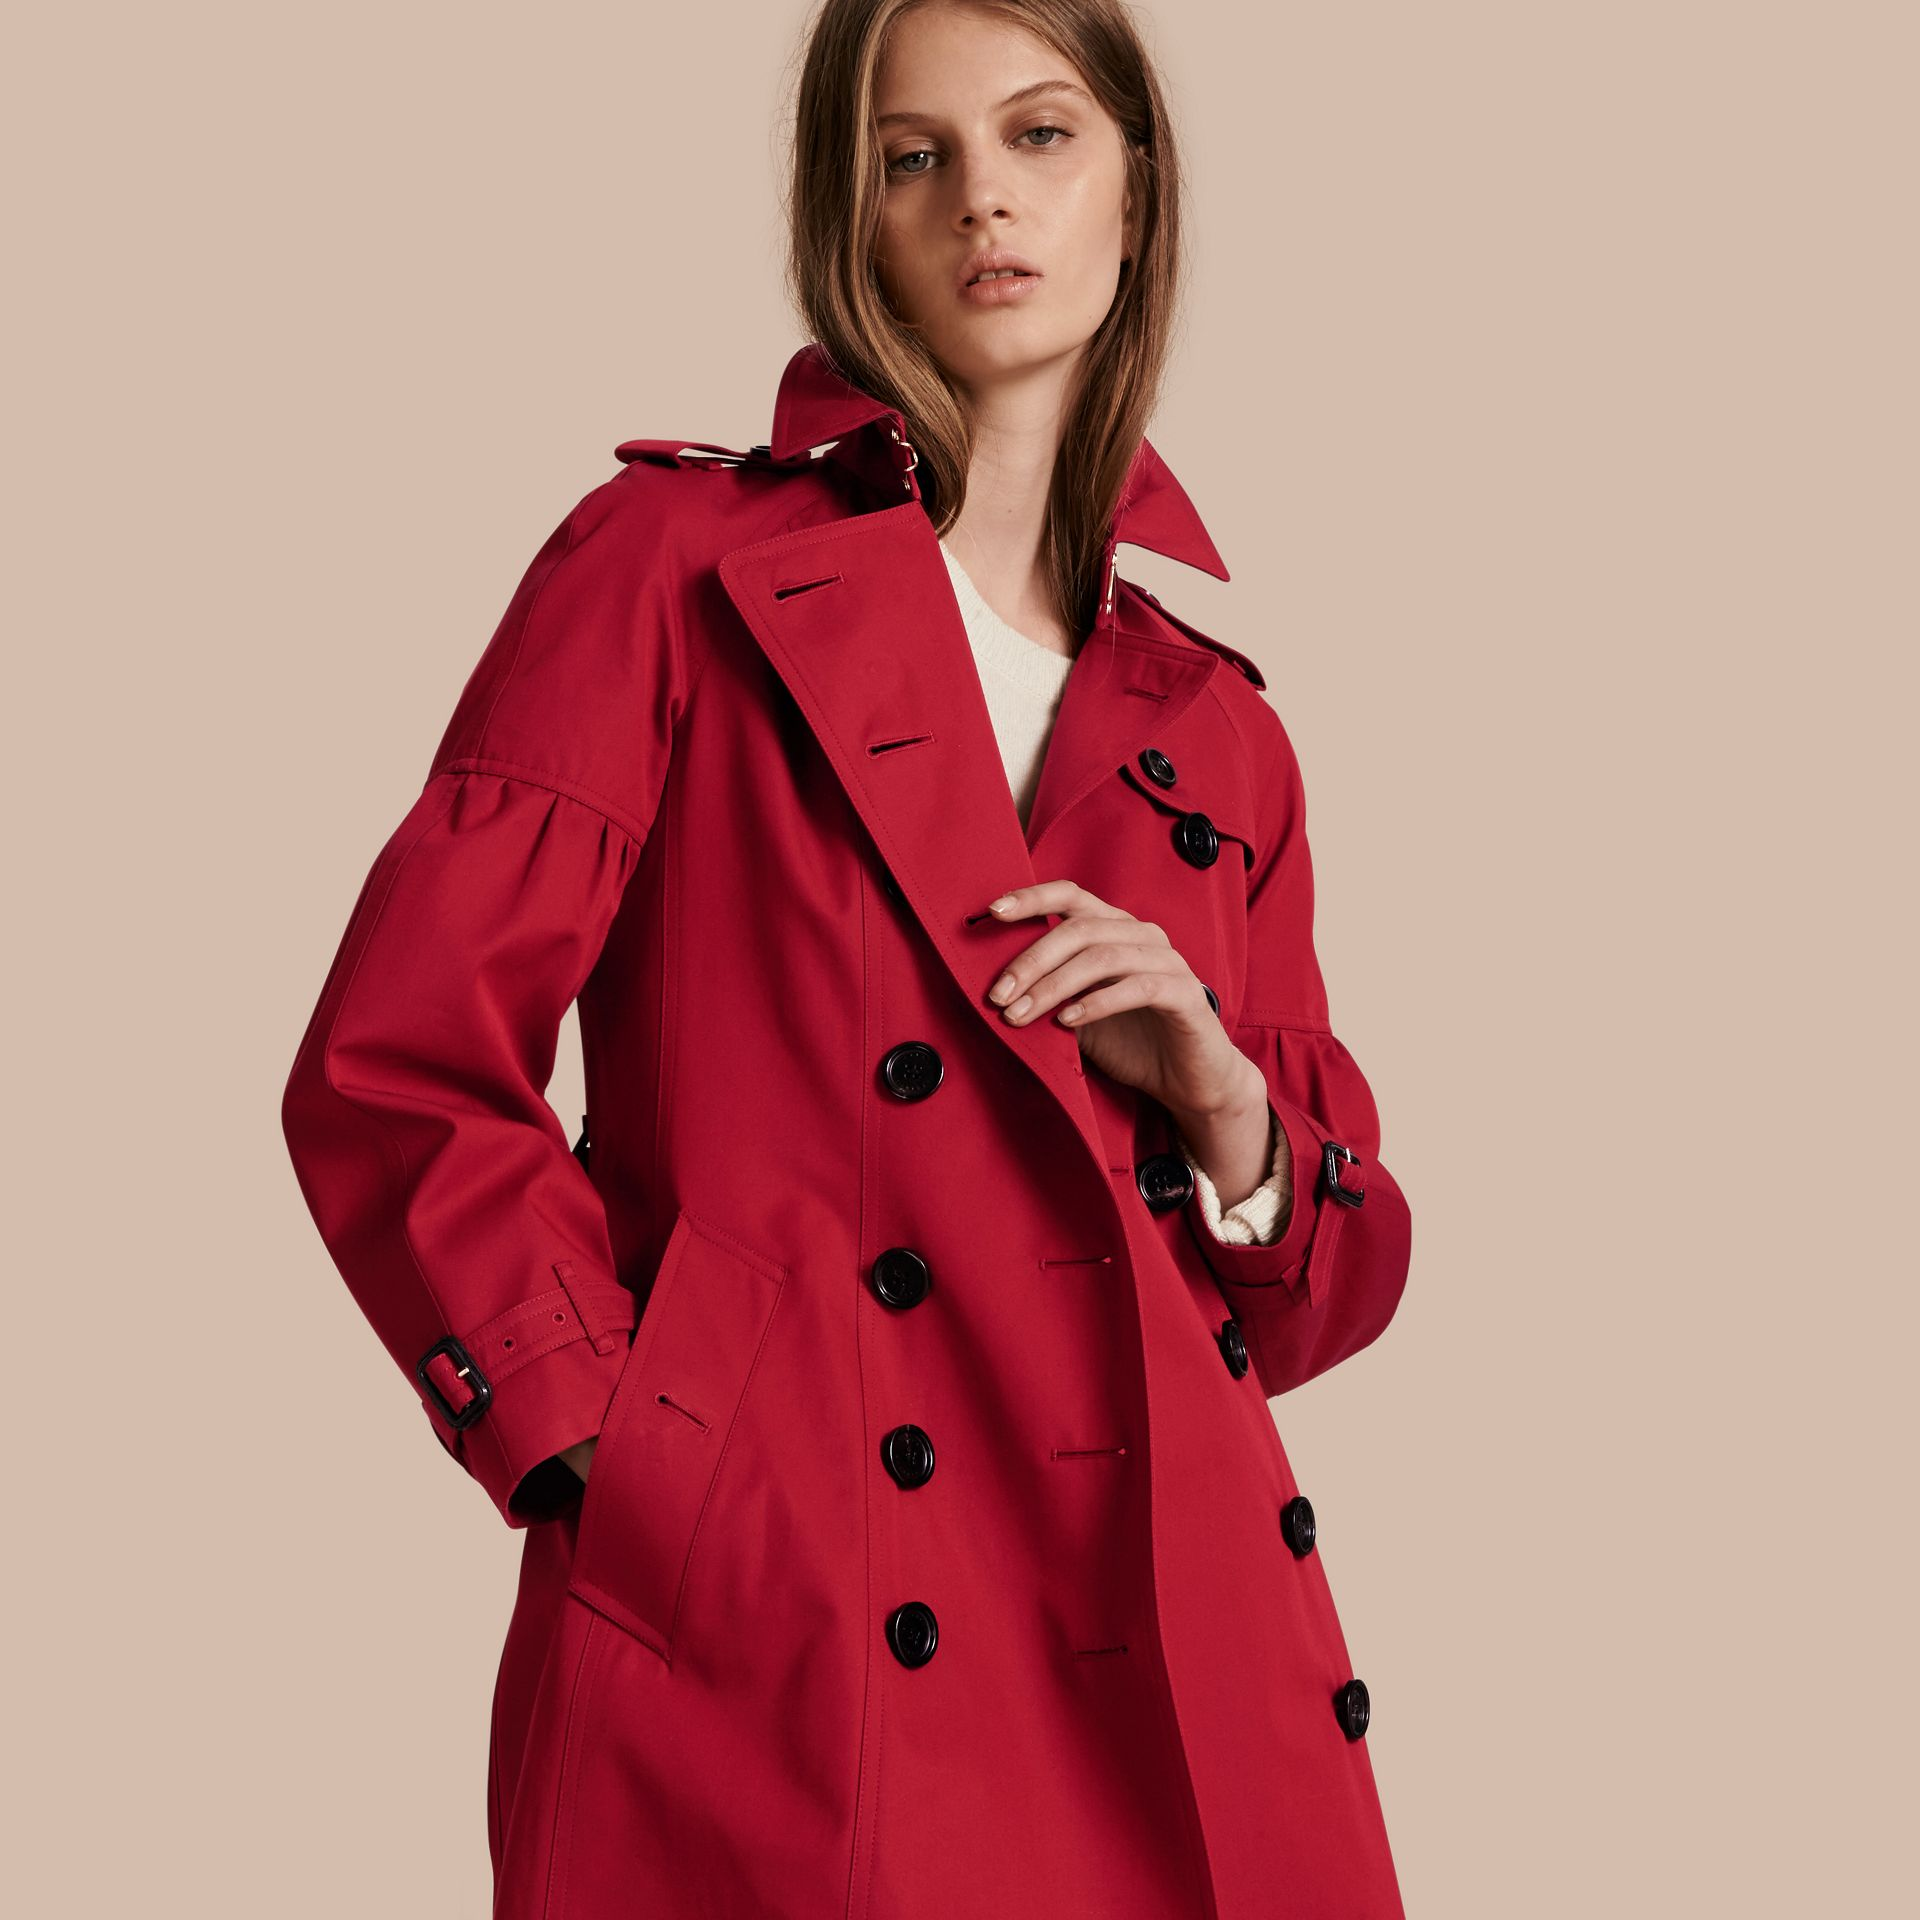 Parade red Cotton Gabardine Trench Coat with Puff Sleeves Parade Red - gallery image 1